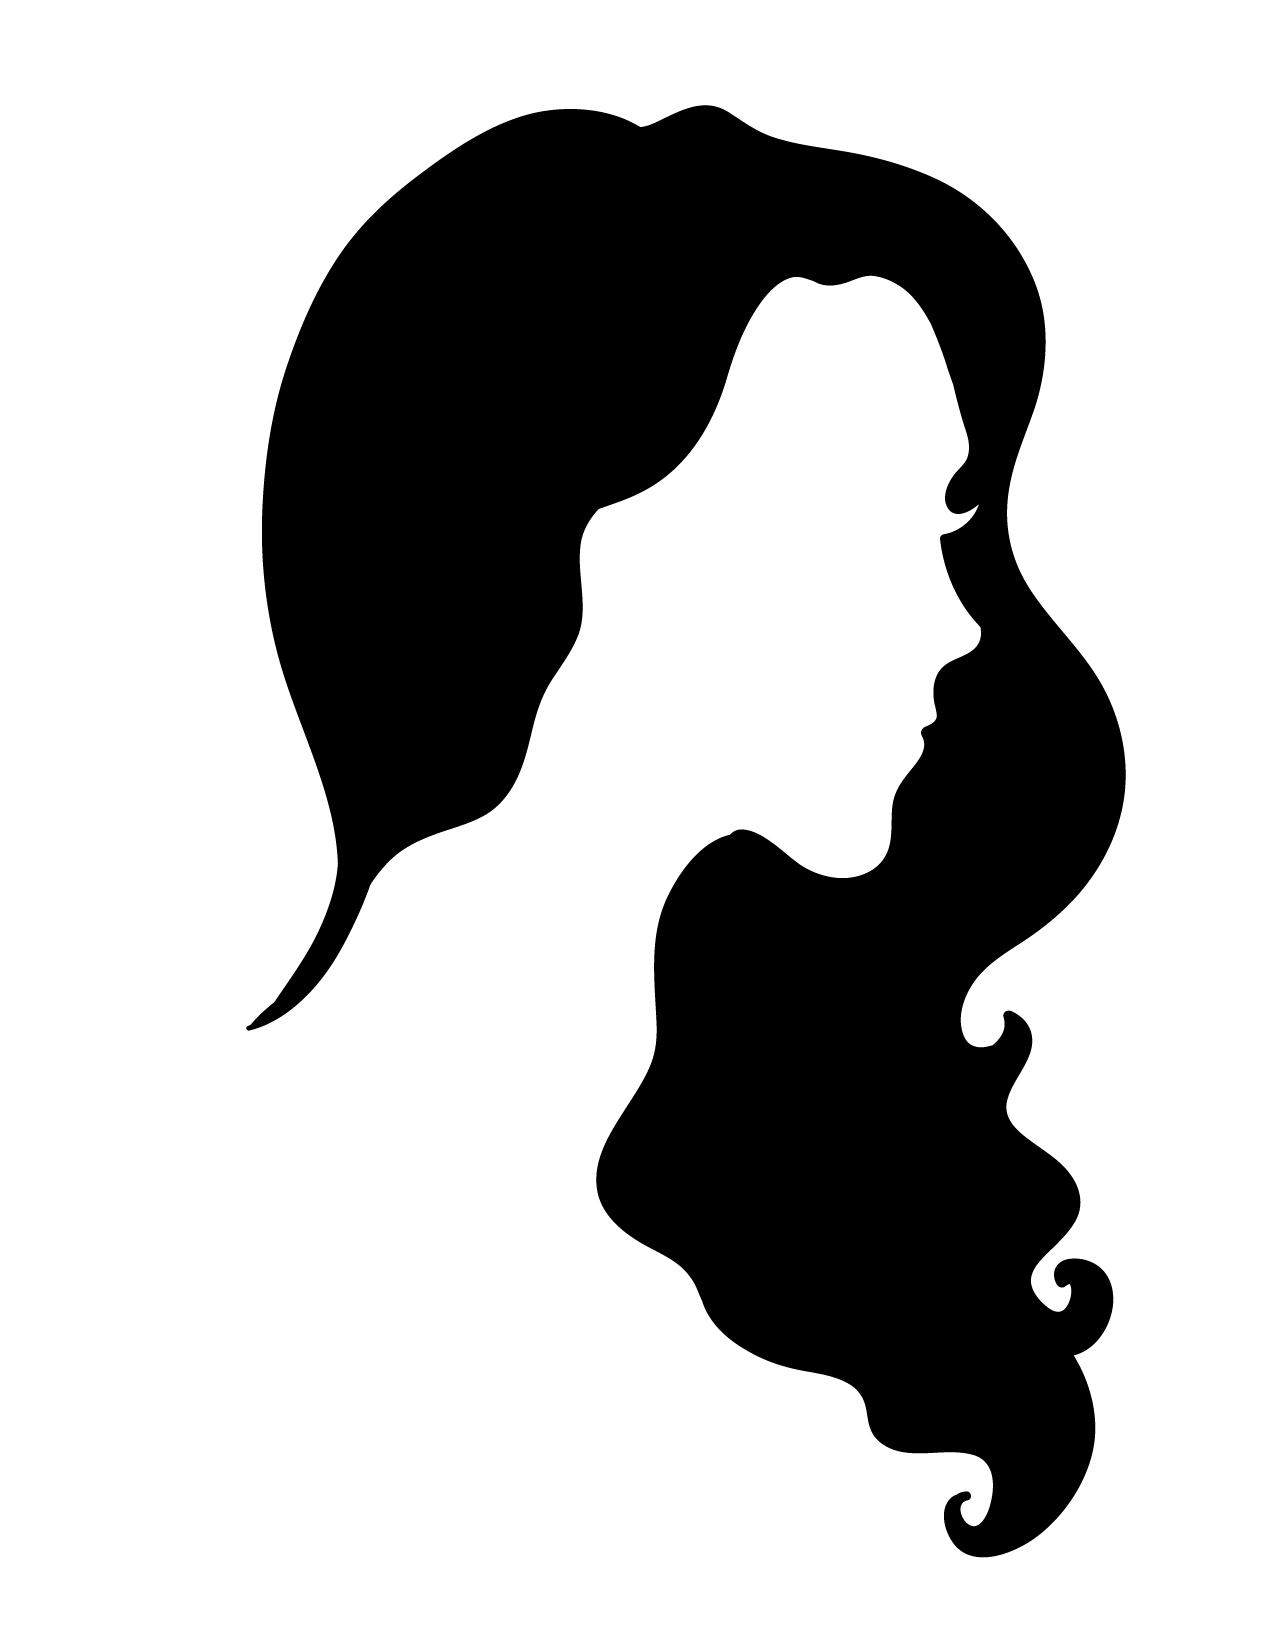 Wall Sticker Online Shopping Cool Silhouette At Getdrawings Com Free For Personal Use